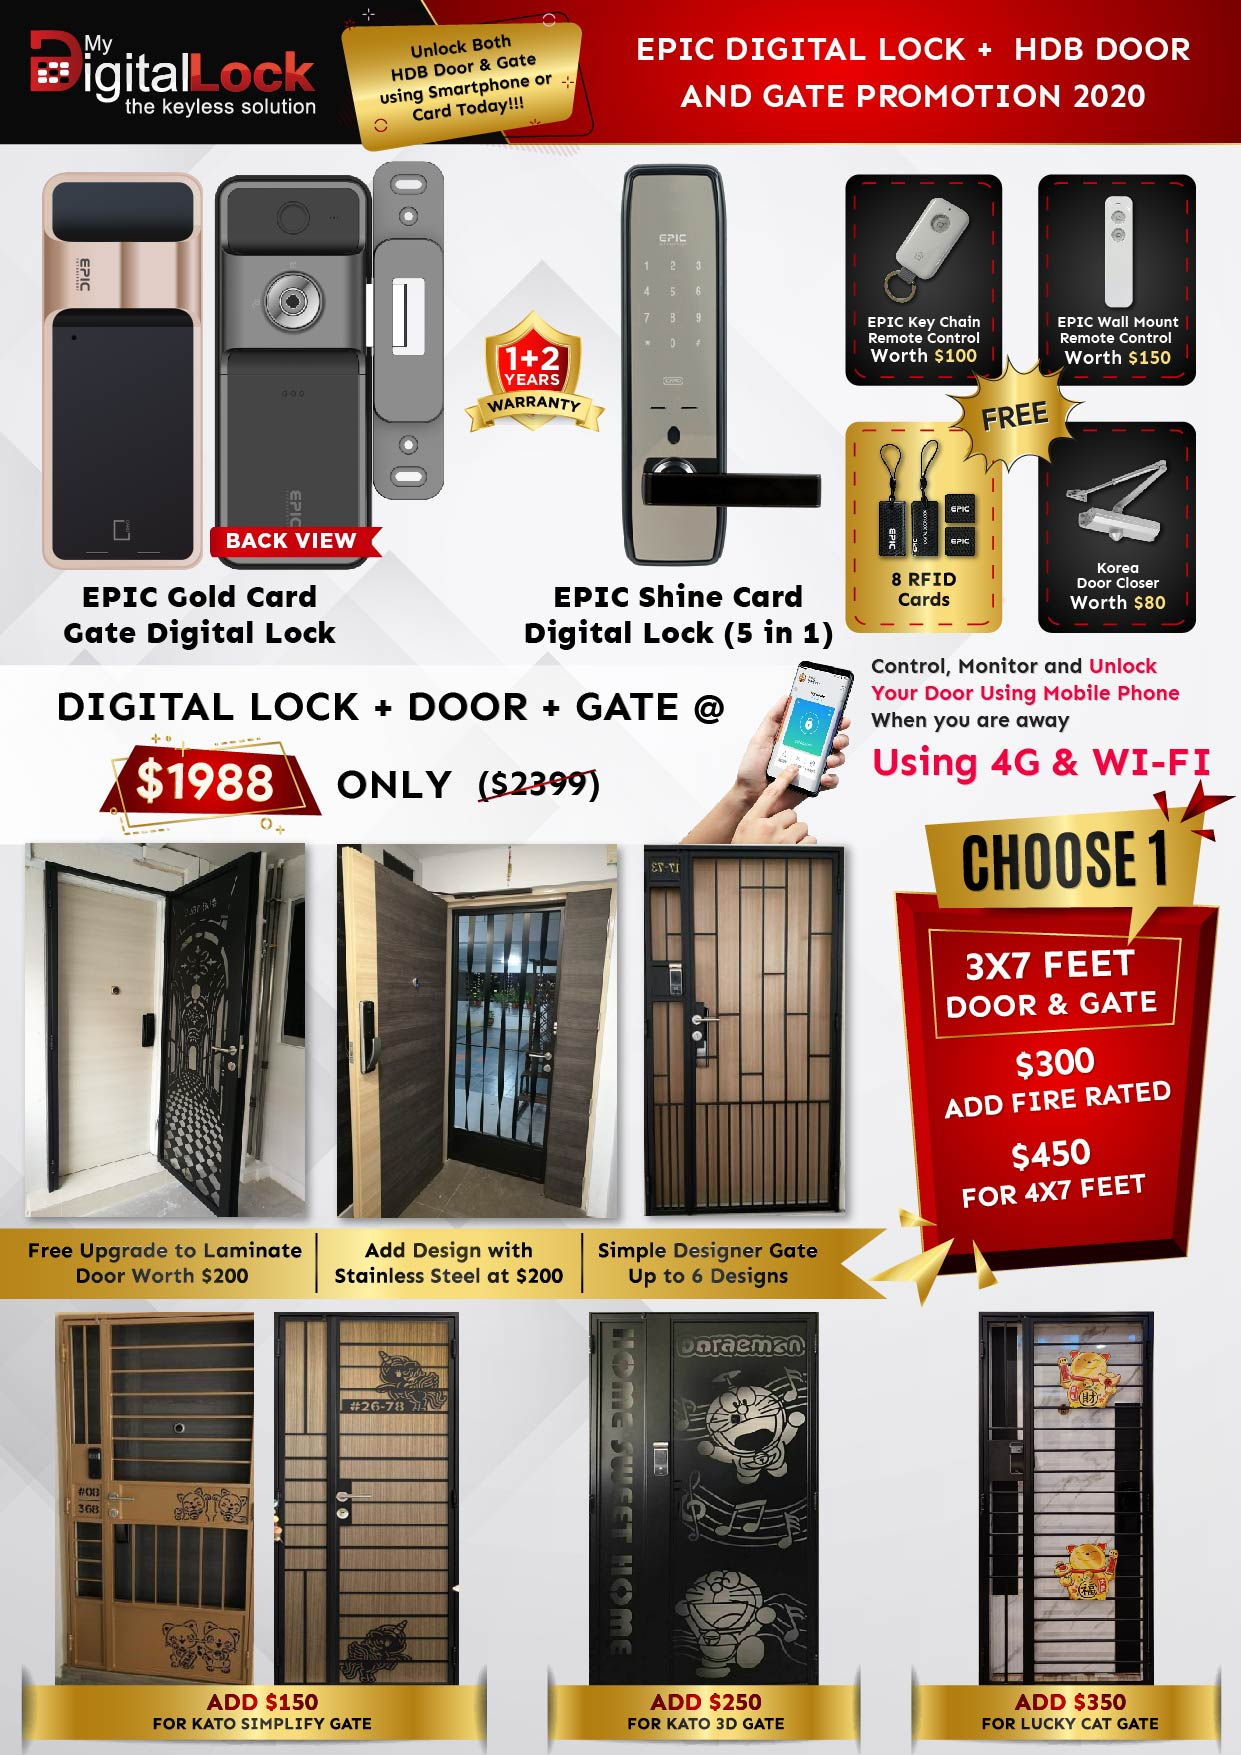 Golden-Rat-Year-HDB-Door-and-Gate-Promotion-with-EPIC-Gold-Card-Gate-Digital-Lock-and-Shine-Card-Digital-Lock-5-in-1